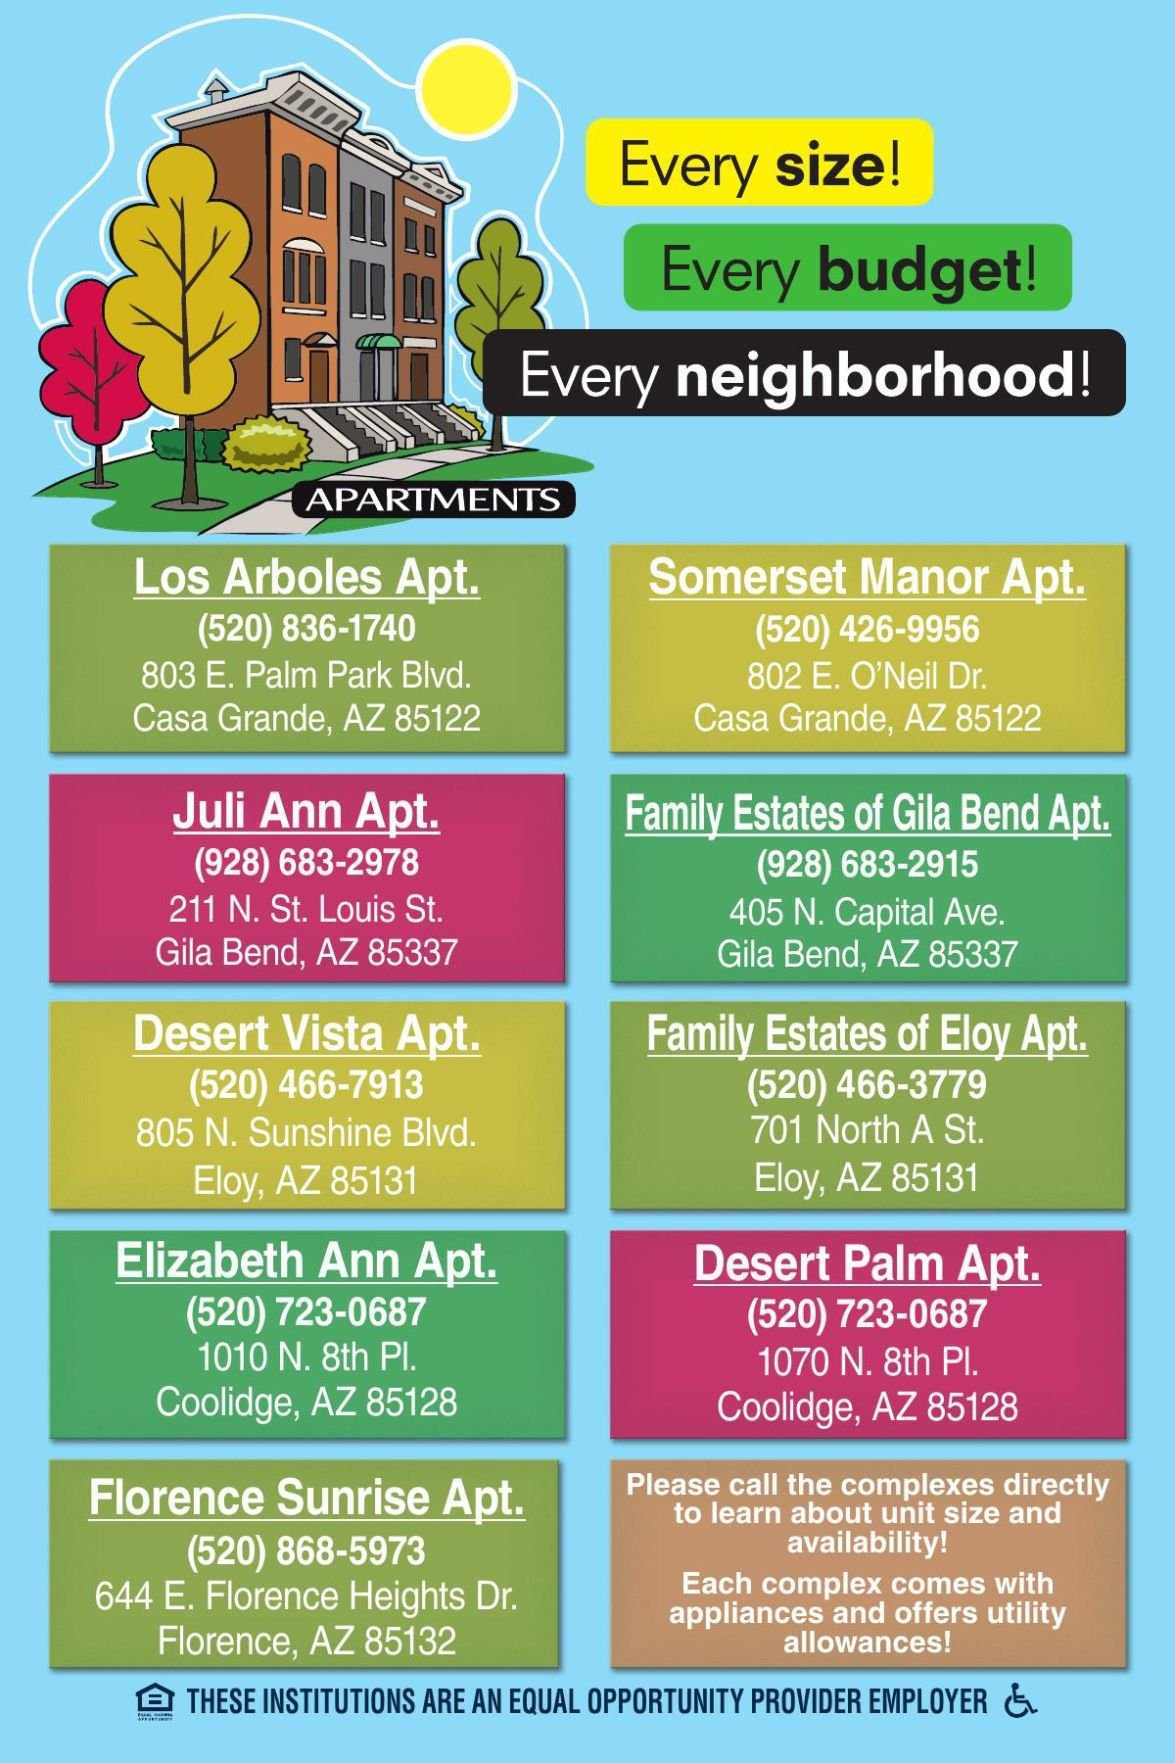 Every size! Every budget! - Landmark Apartments